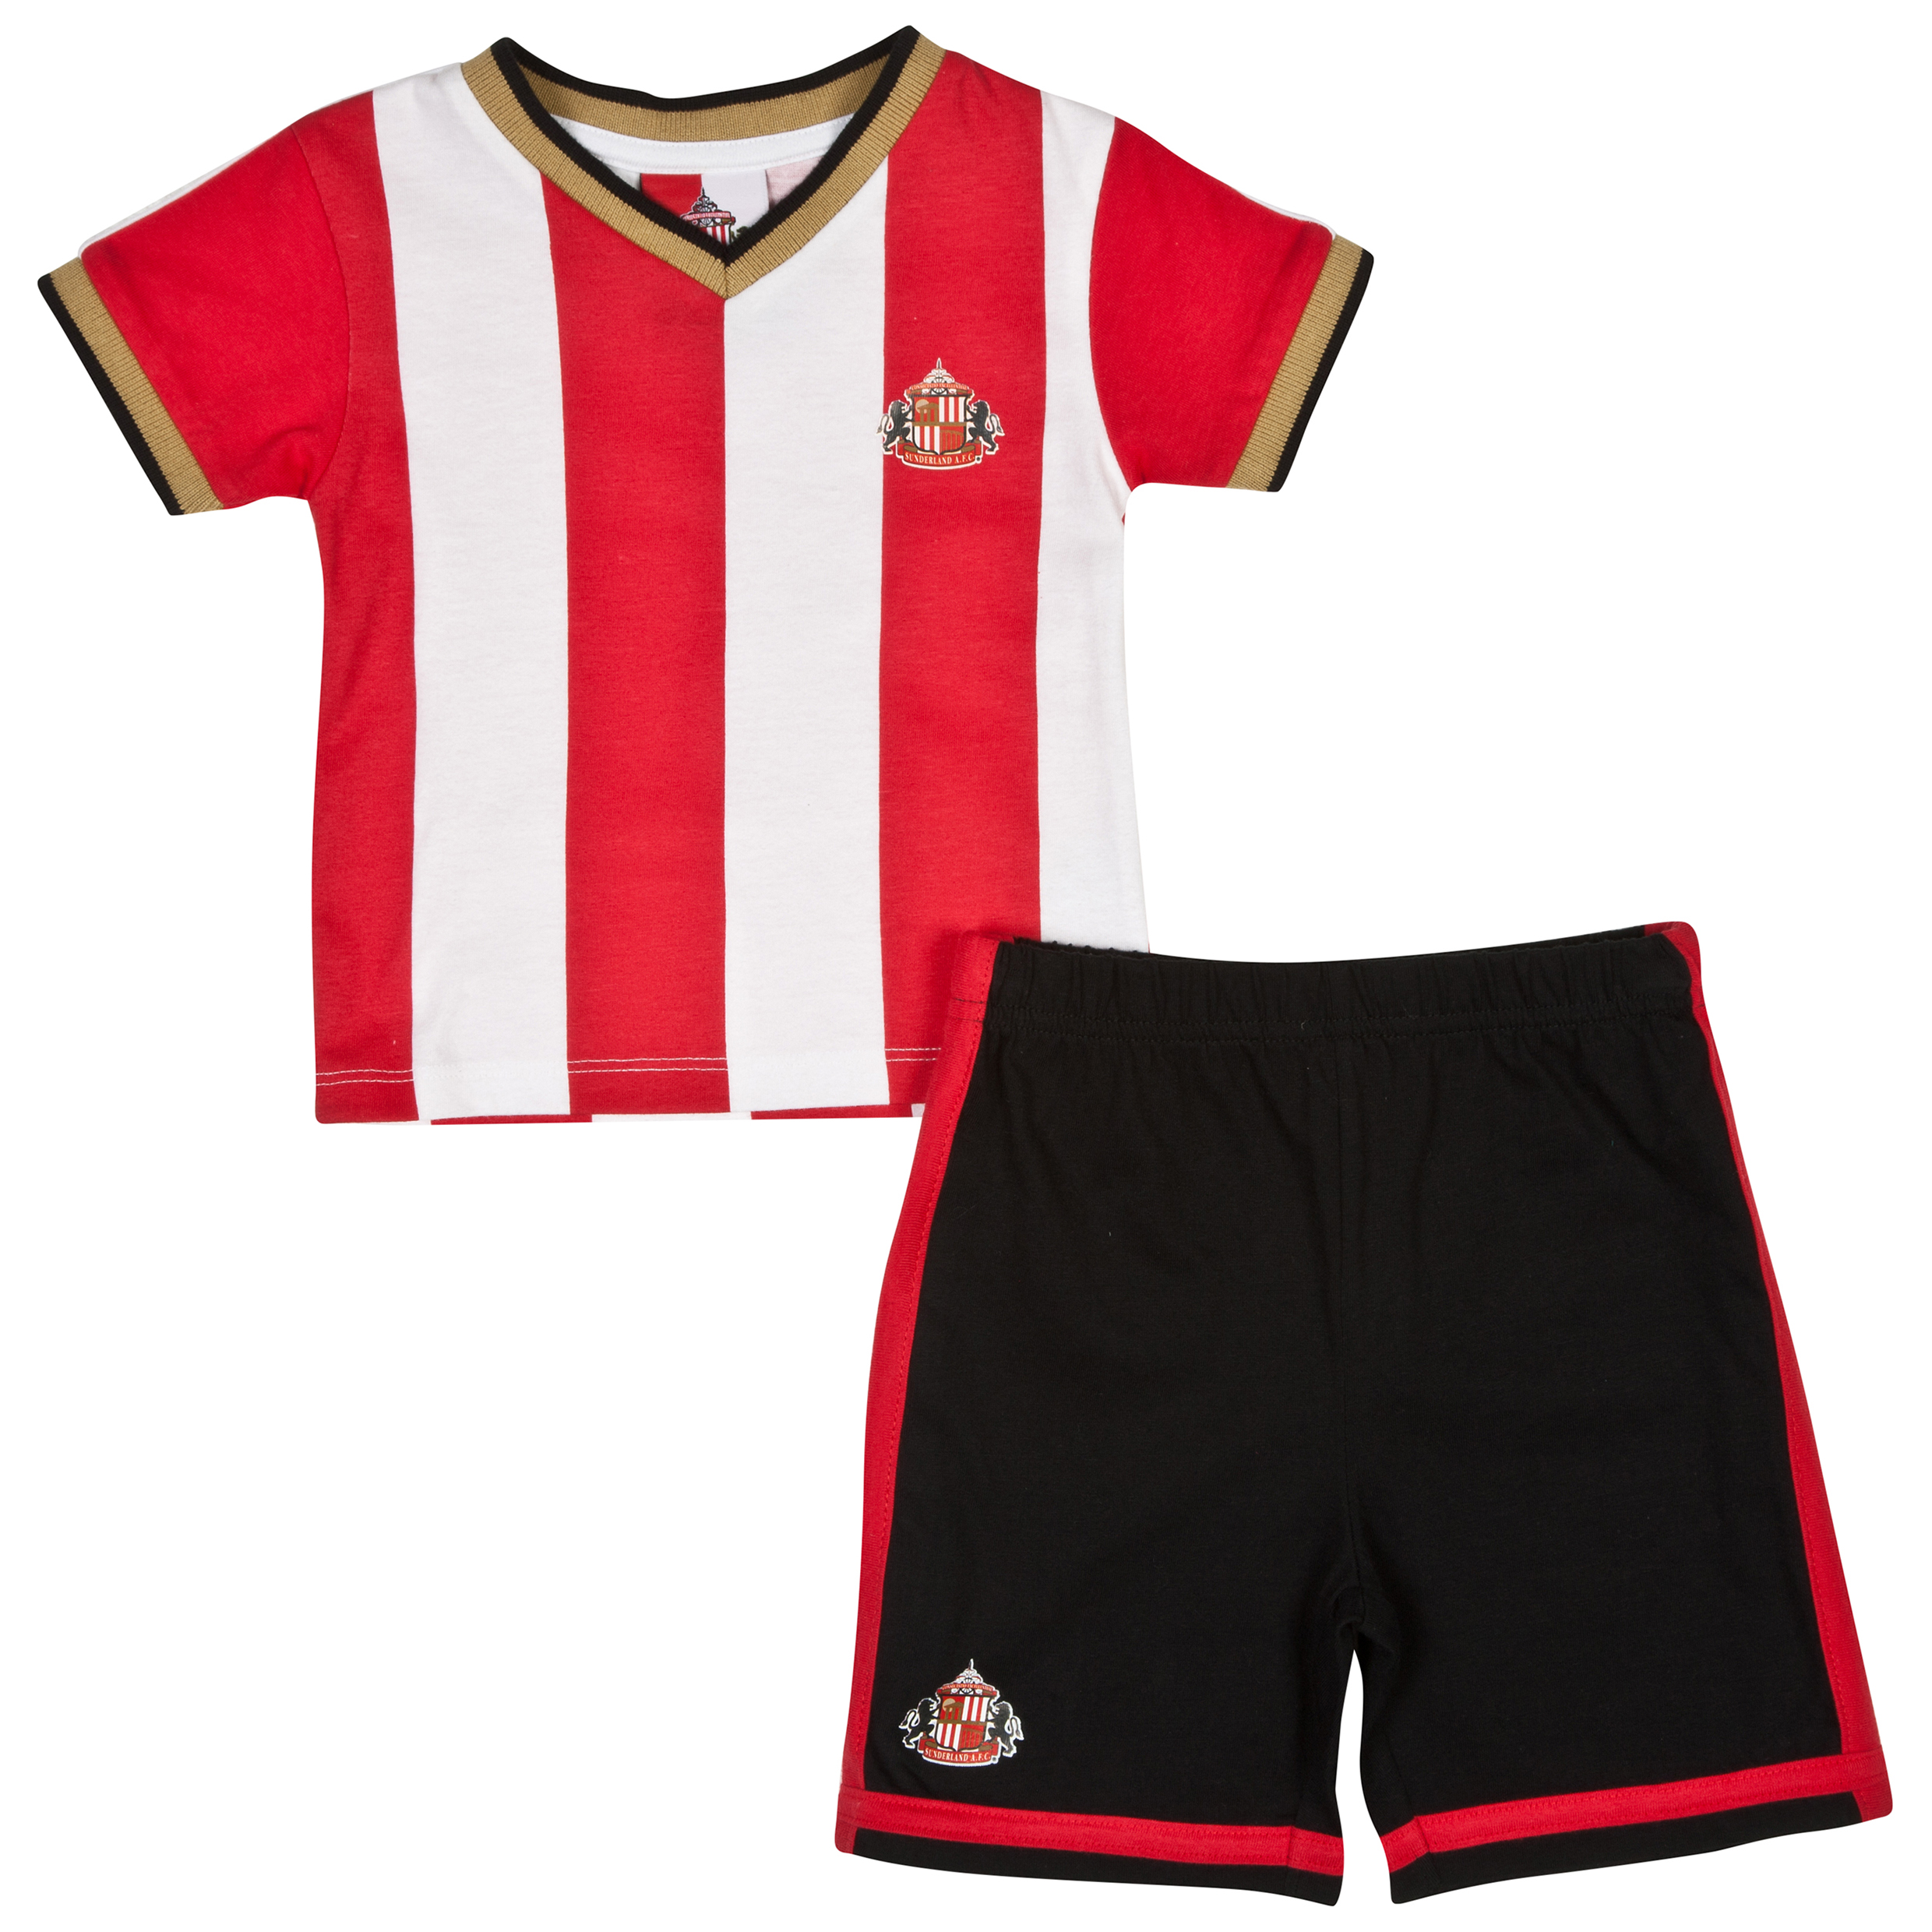 Sunderland 14/15 Kit Pyjamas - Red/White/Black - Baby